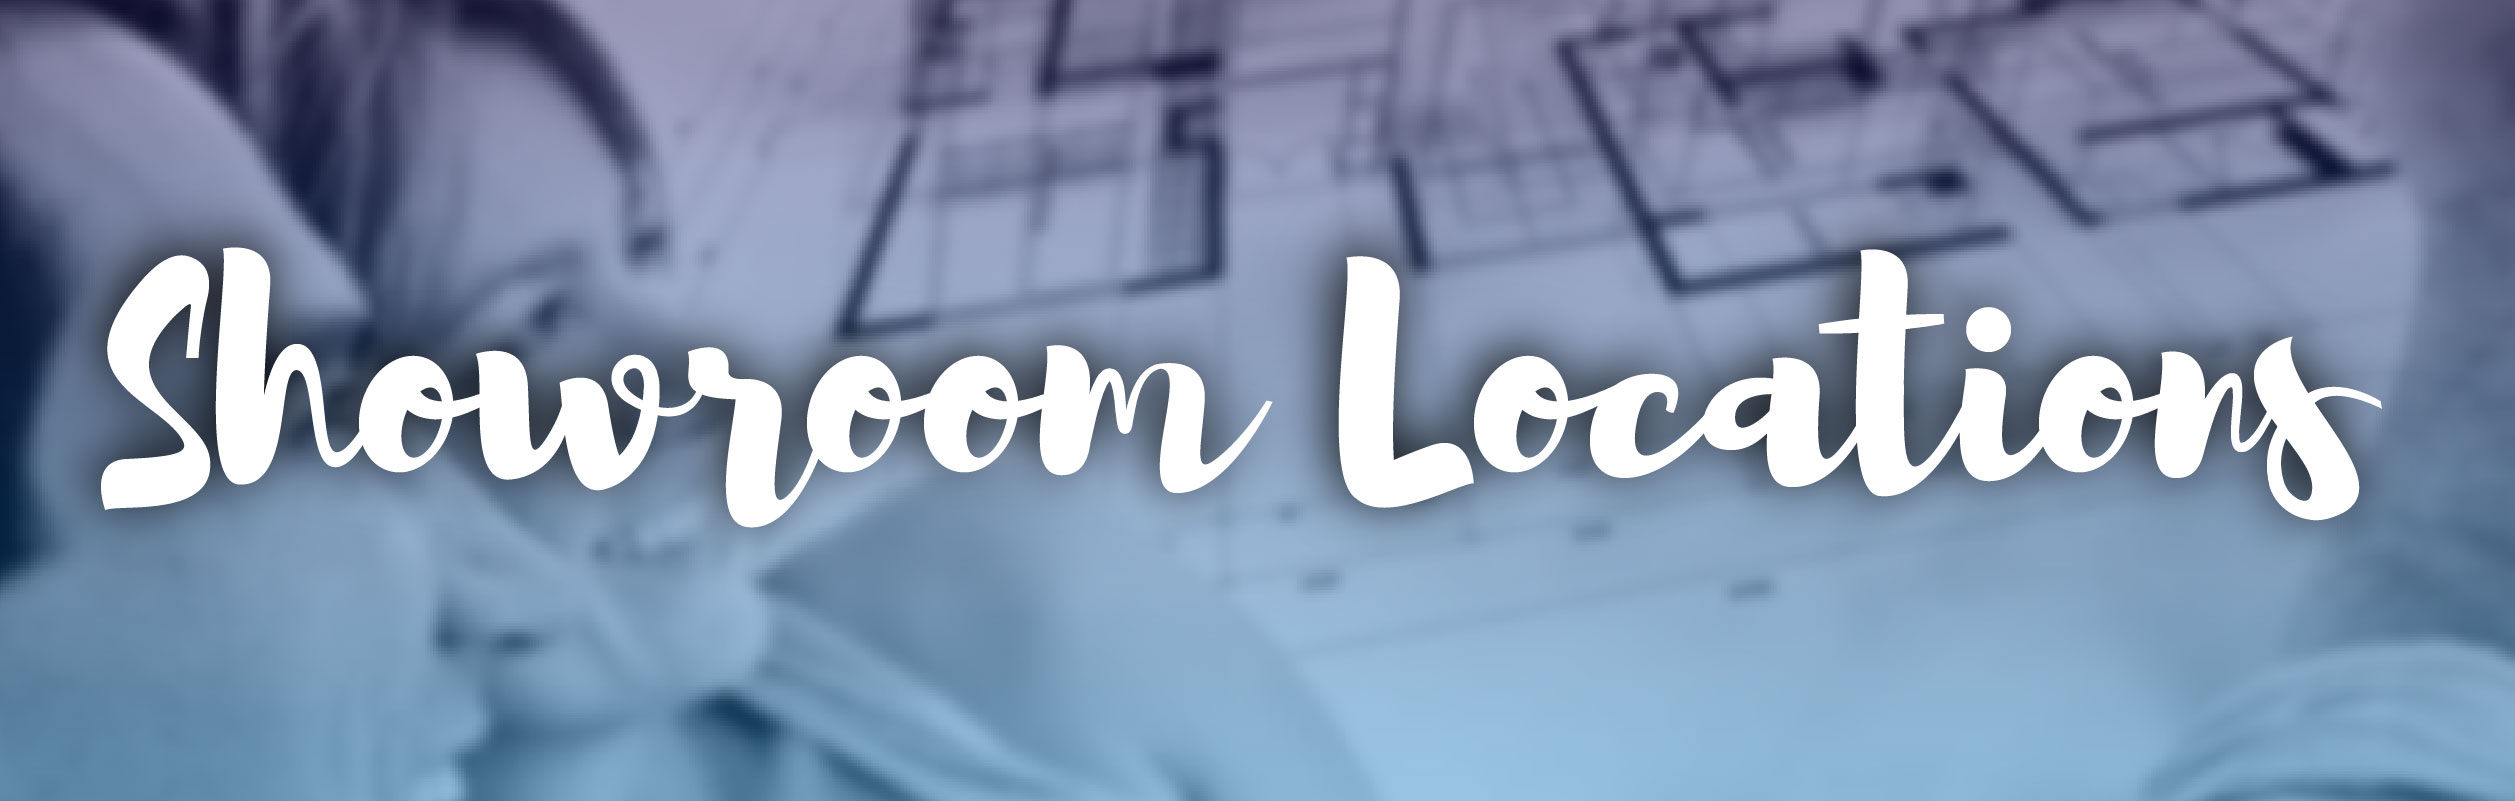 Showroom Locations Header-01